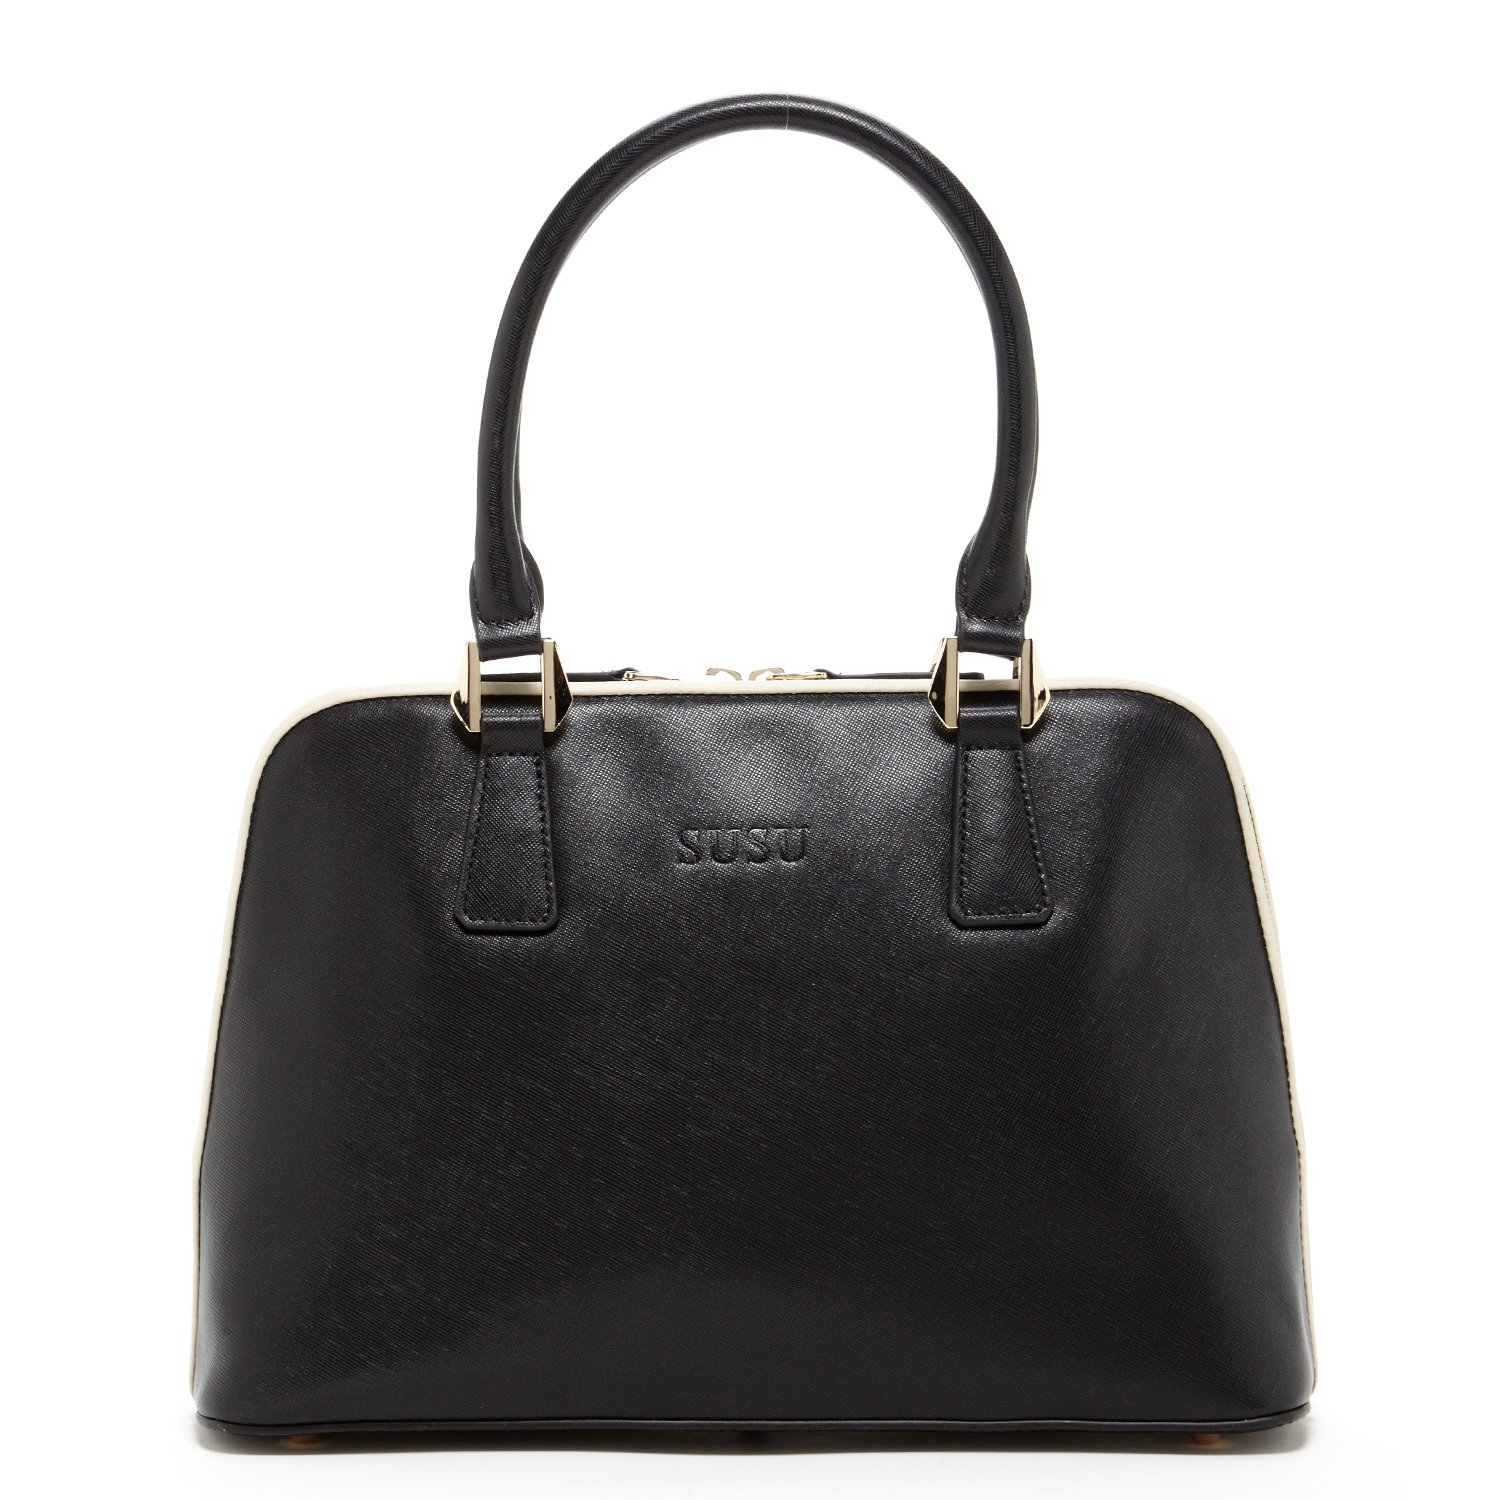 SUSU Saffiano Leather Satchel For Women Designer Structured Crossbody Bag Purse For Work Top Handle Handbags On Sale Black Tote Shoulder Strap Bags with Zipper Closure Handbag Dome Shape Purses